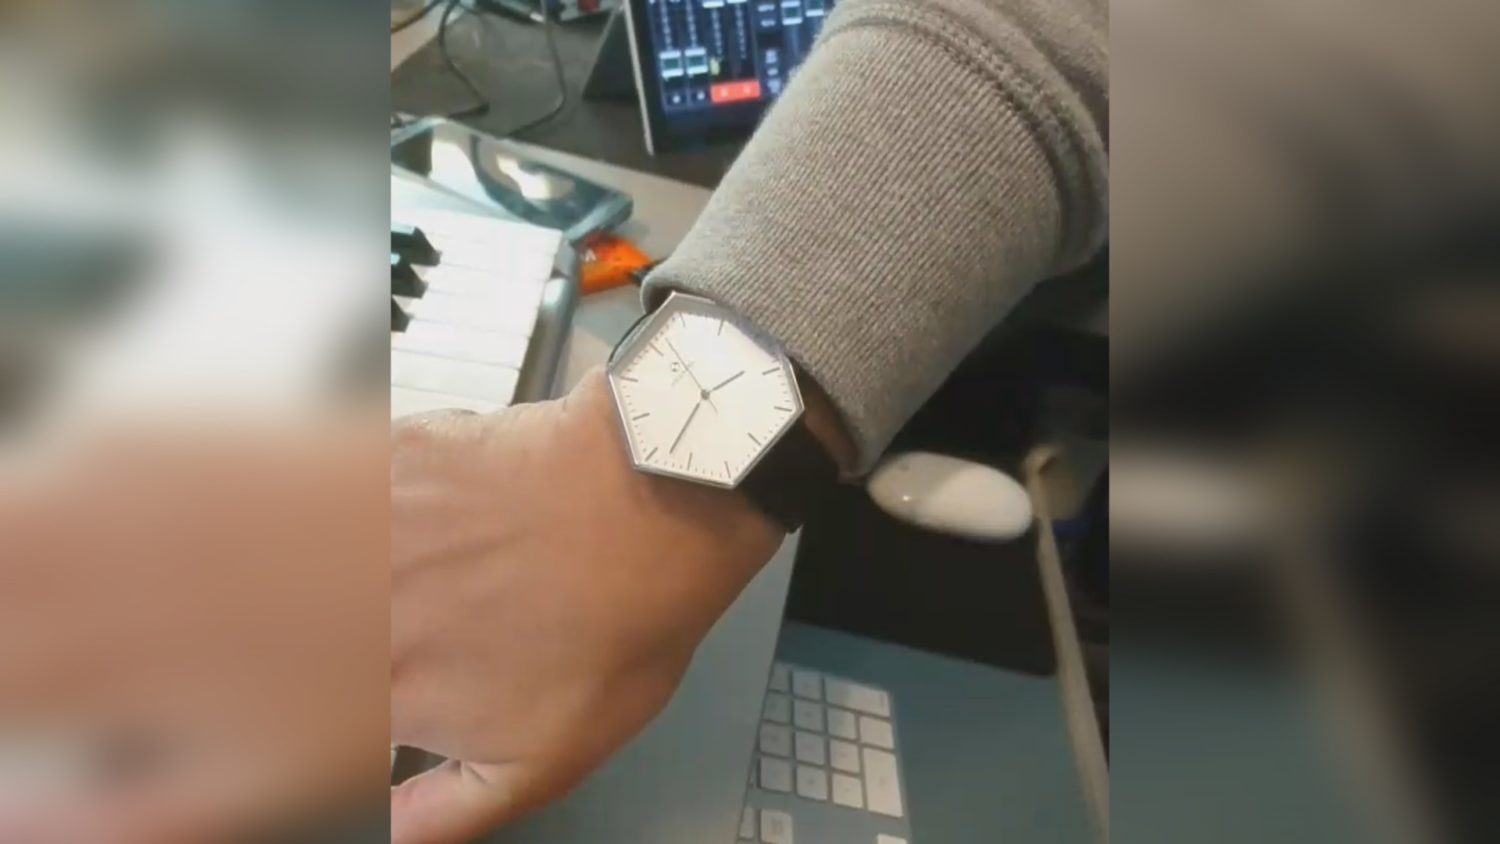 Anthony wears the Hexwatch